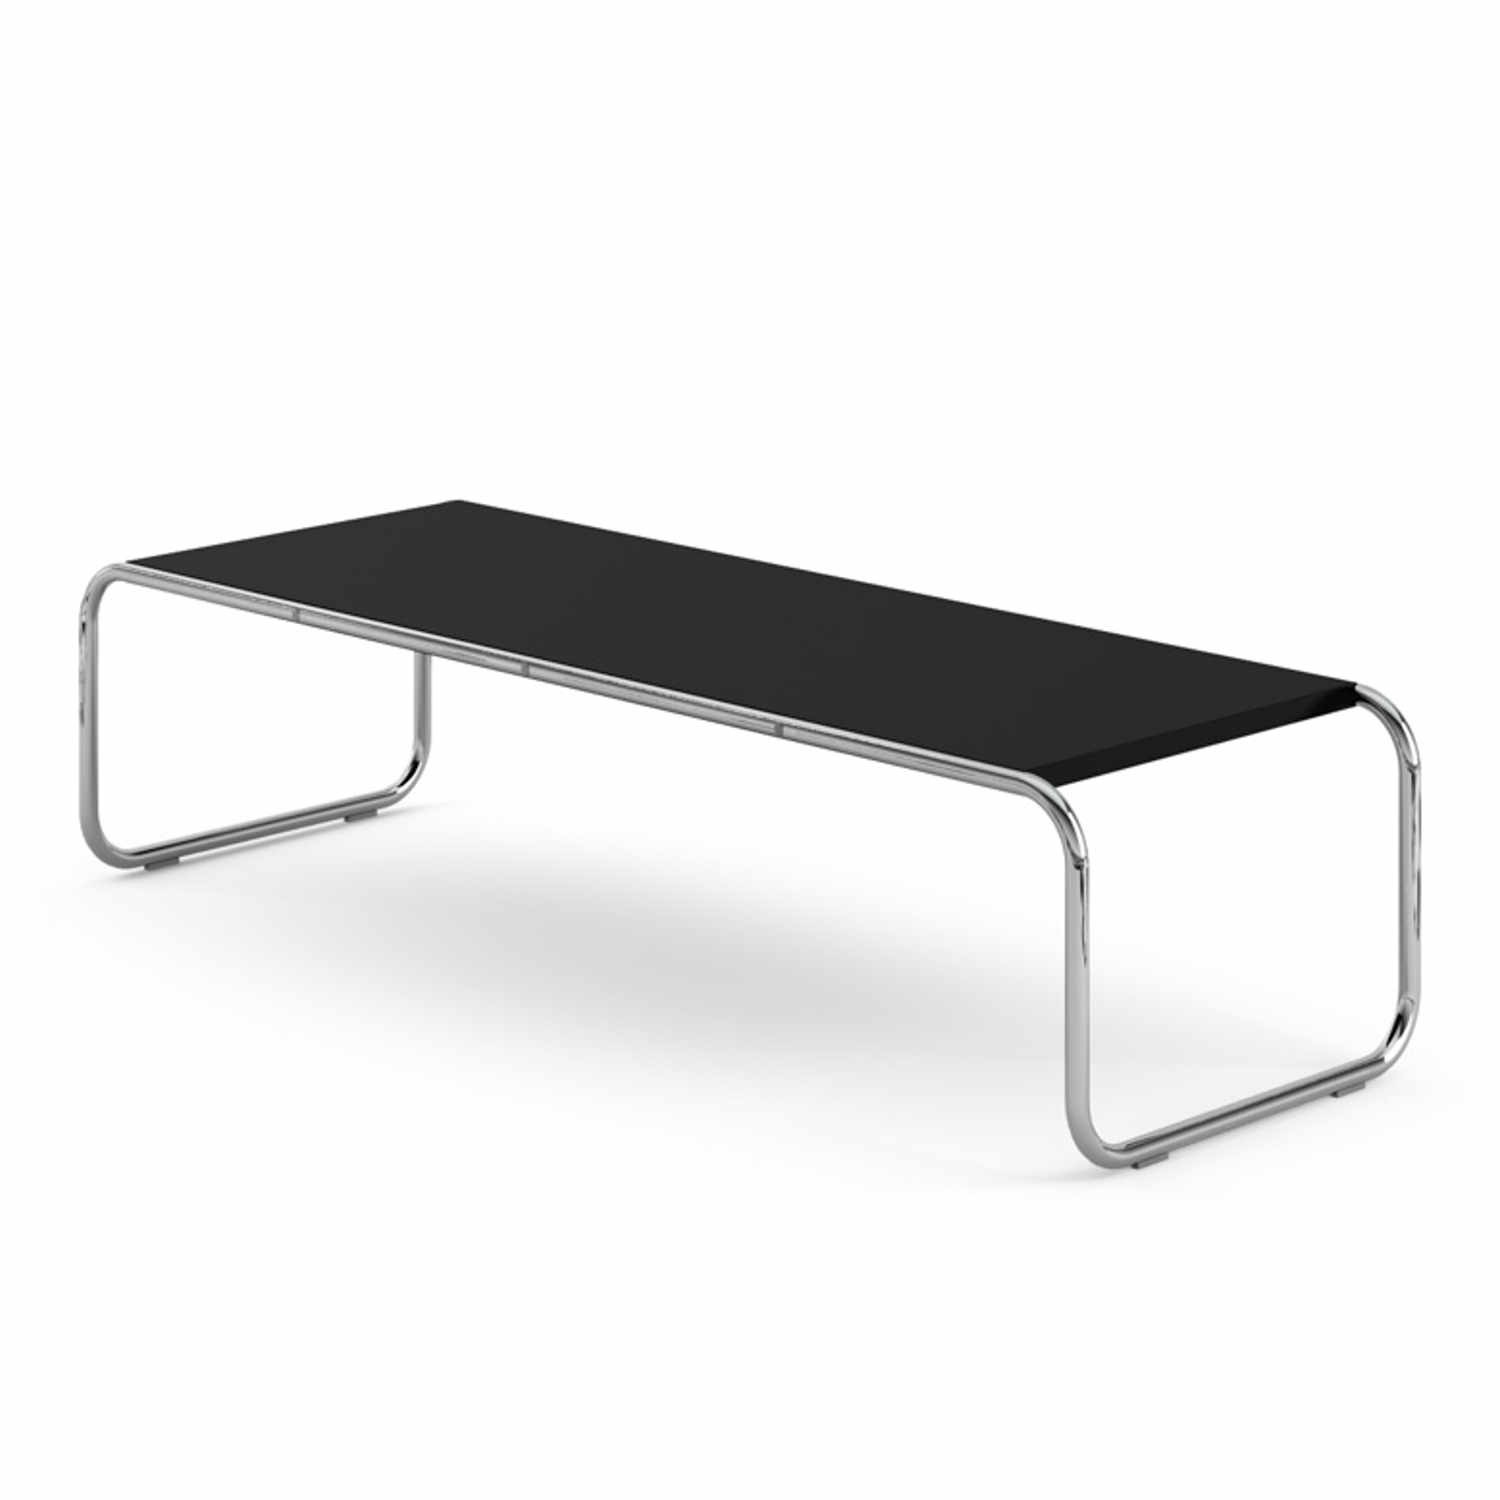 Knoll International Laccio 2 Coffee Table Couchtisch